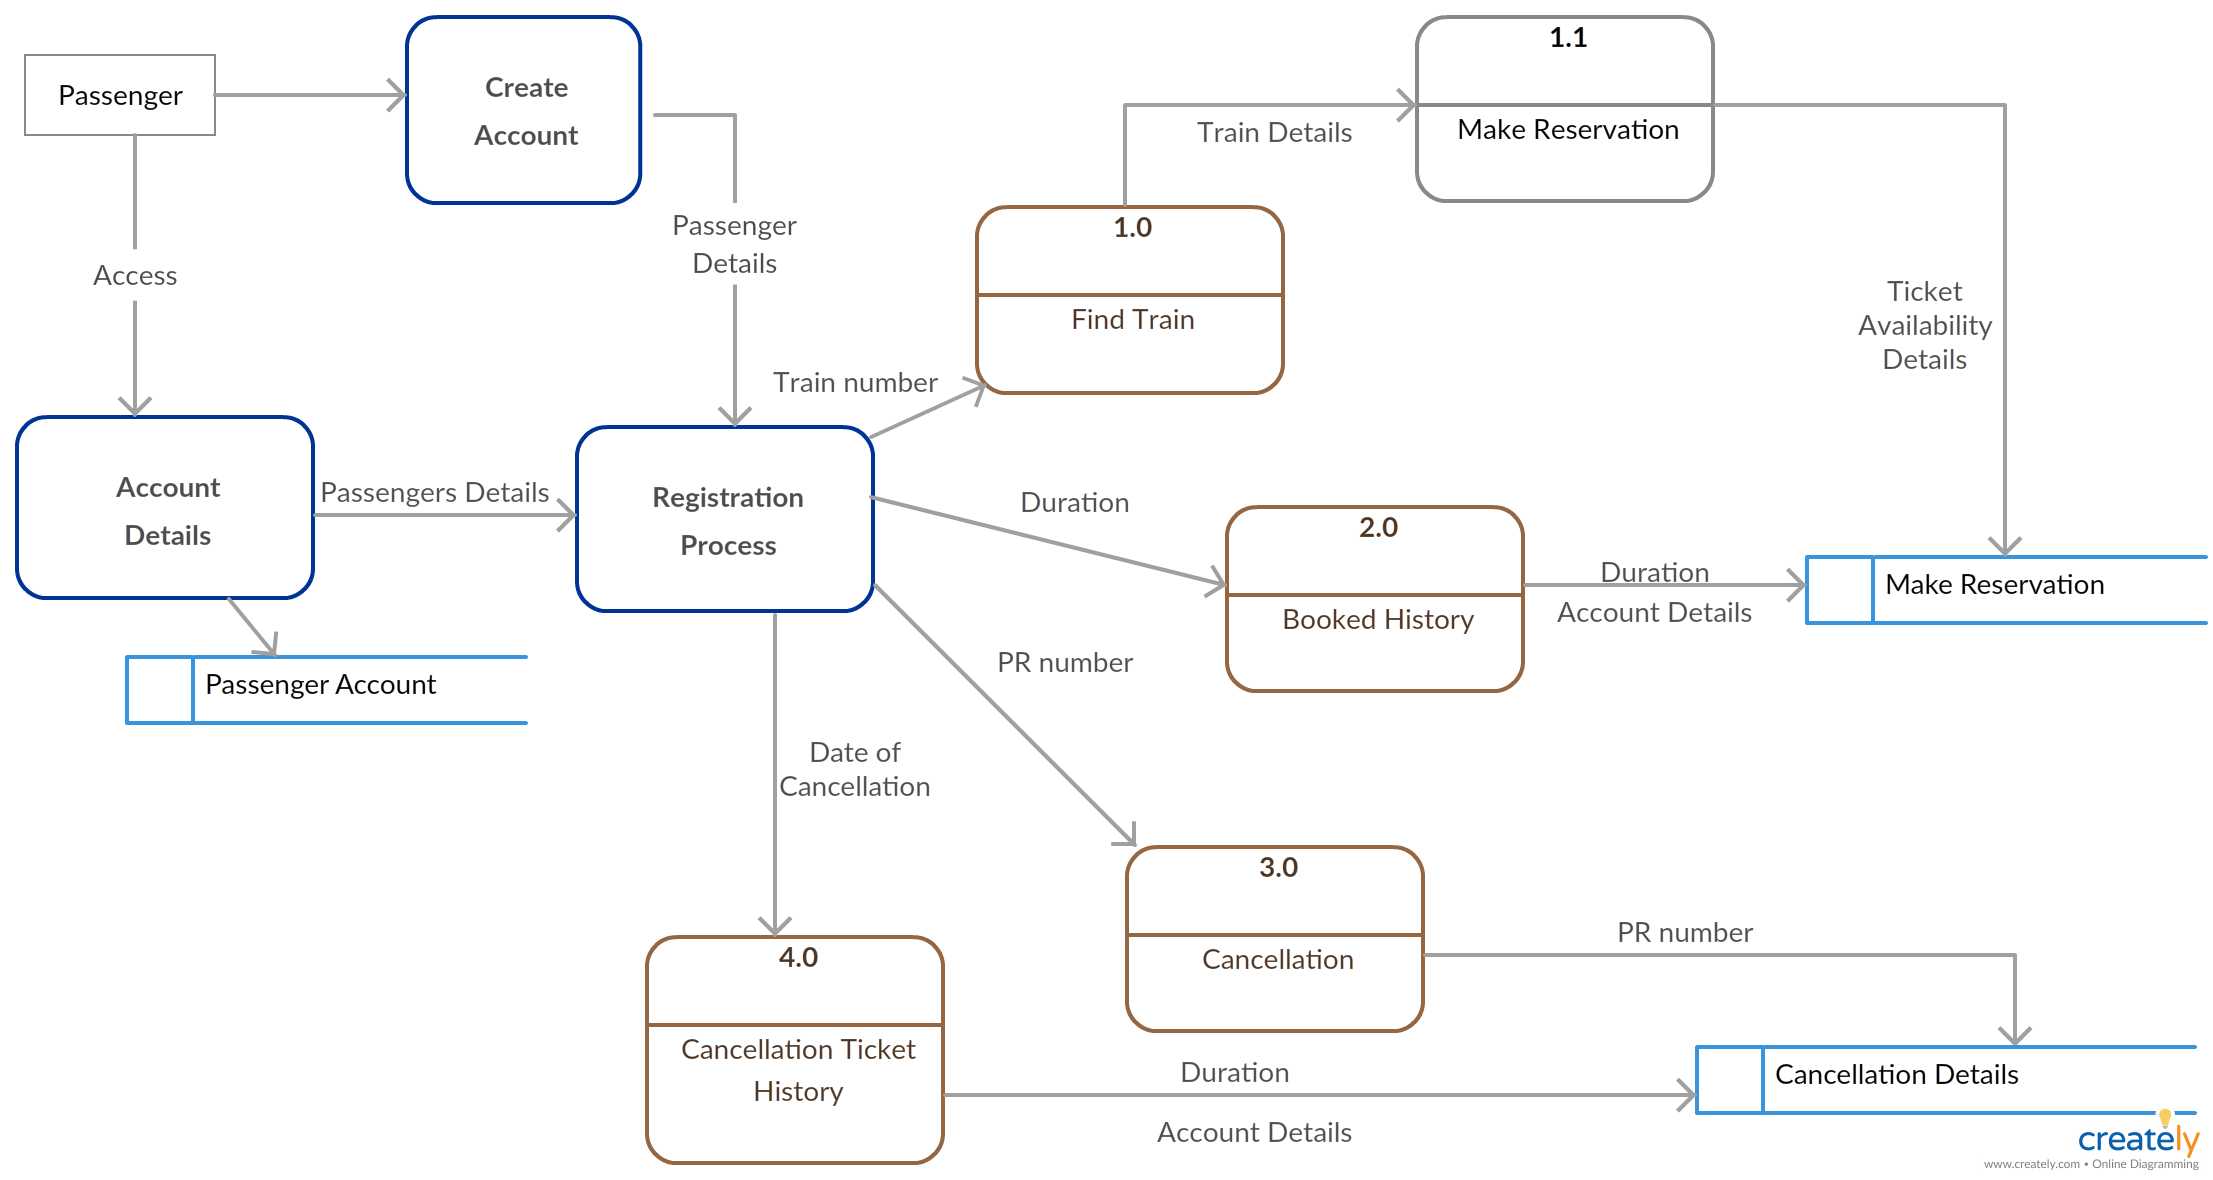 Data flow diagram shows railway reservation level 1 dfd diagrams data flow diagram shows railway reservation level 1 dfd diagrams are used to visual representation ccuart Choice Image